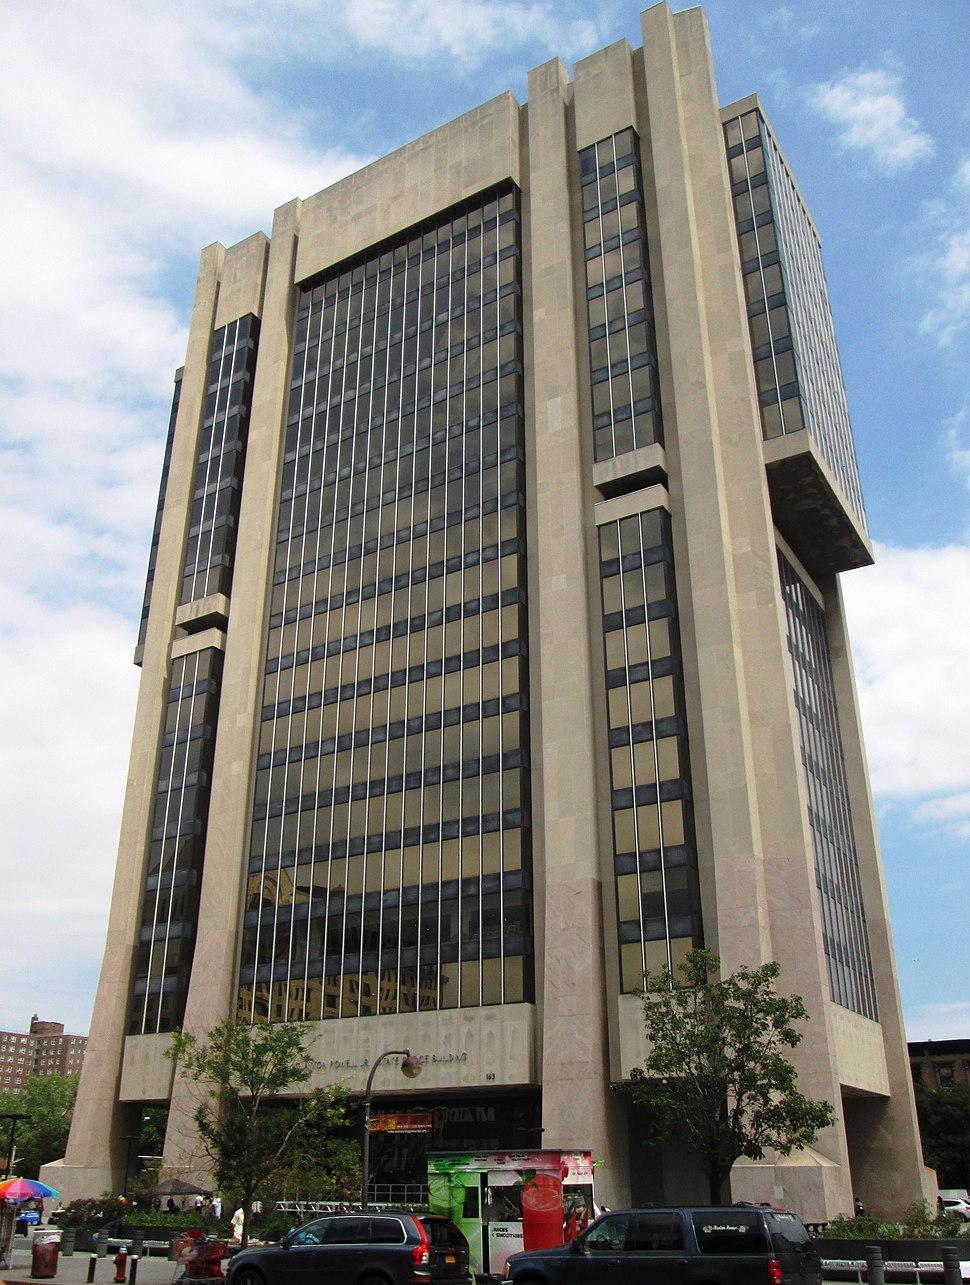 Adam Clayton Powell Jr. State Office Building from east